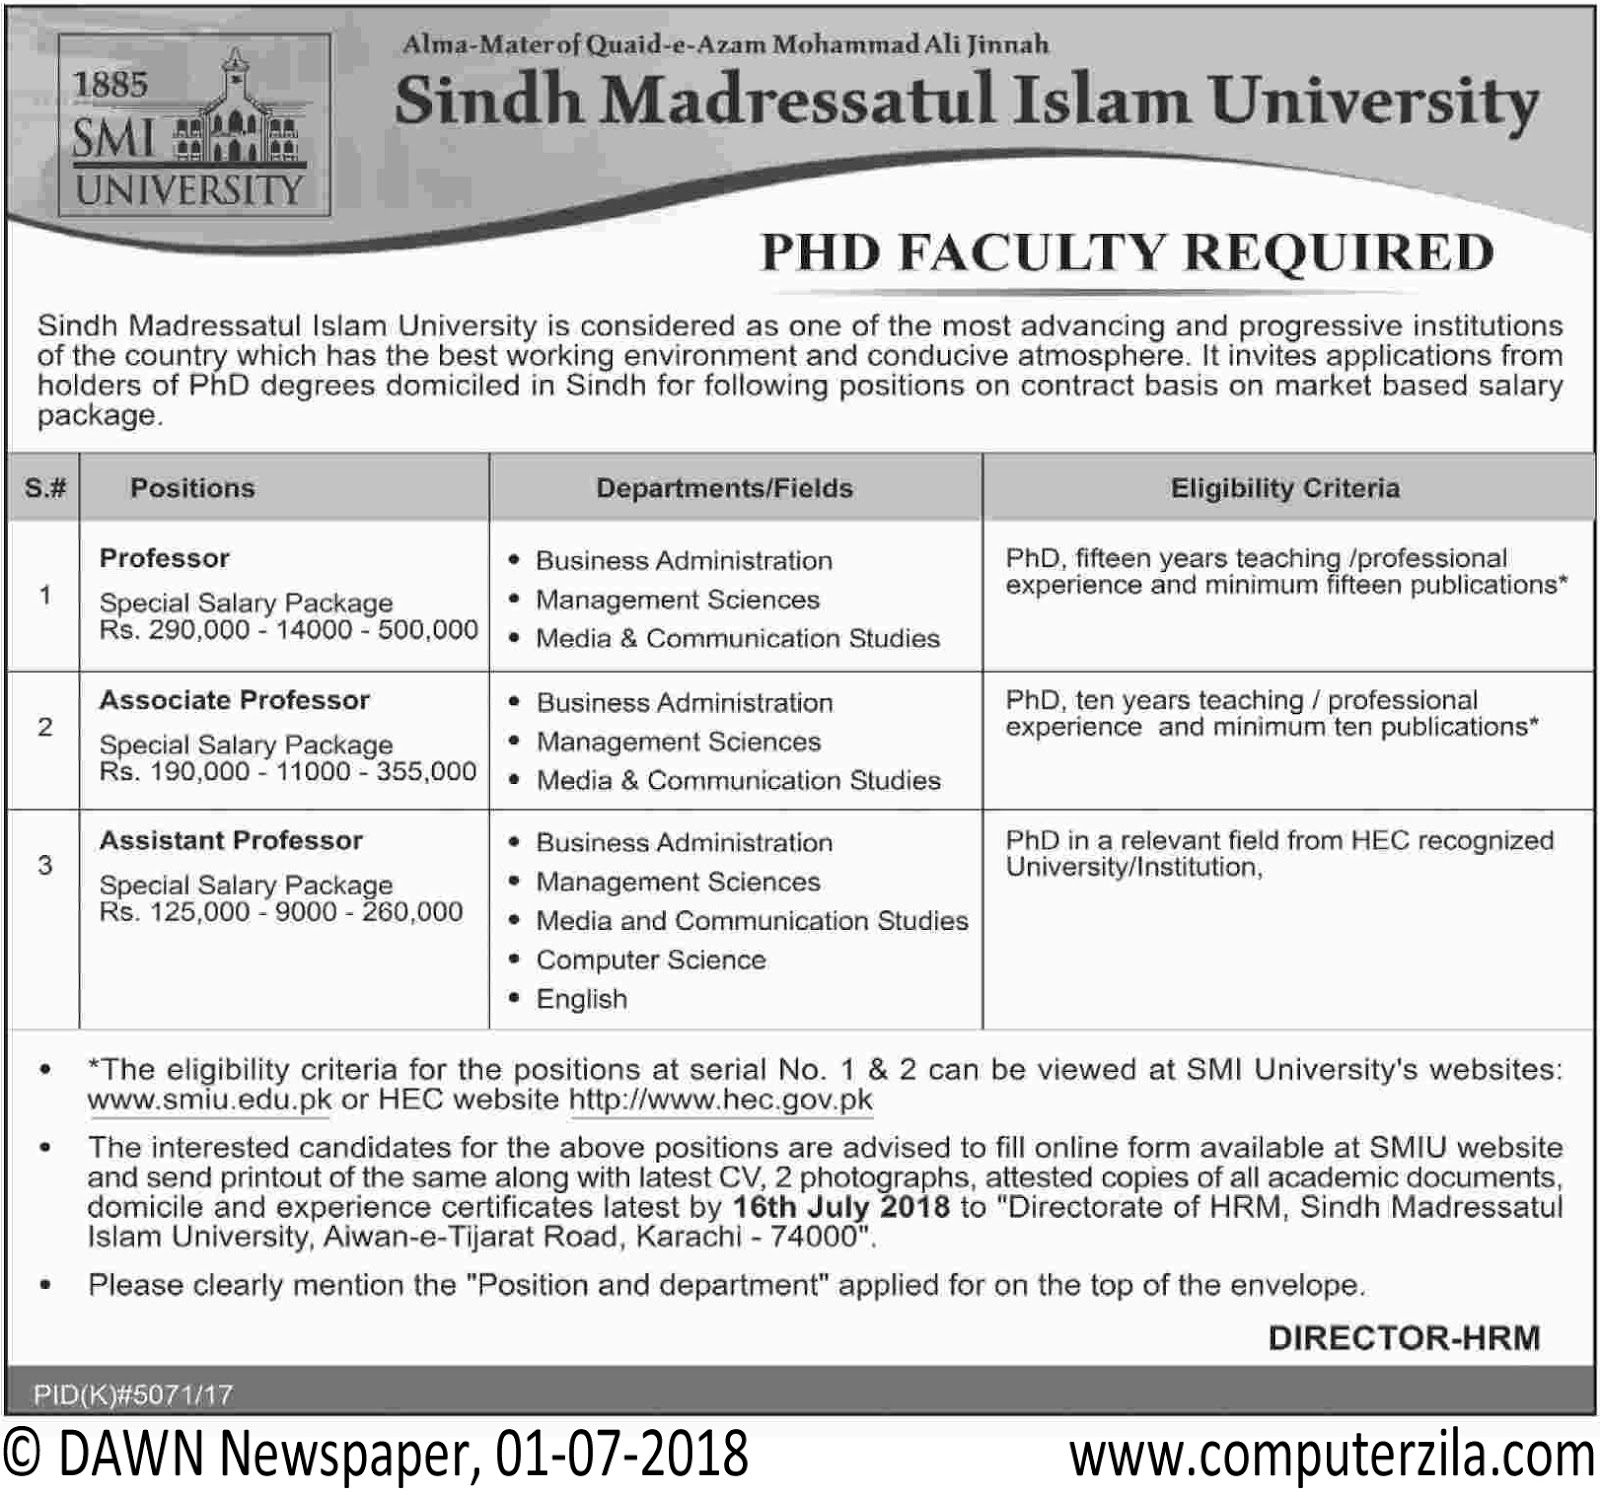 PHD Faculty Required at Sindh Madressatul Islam University